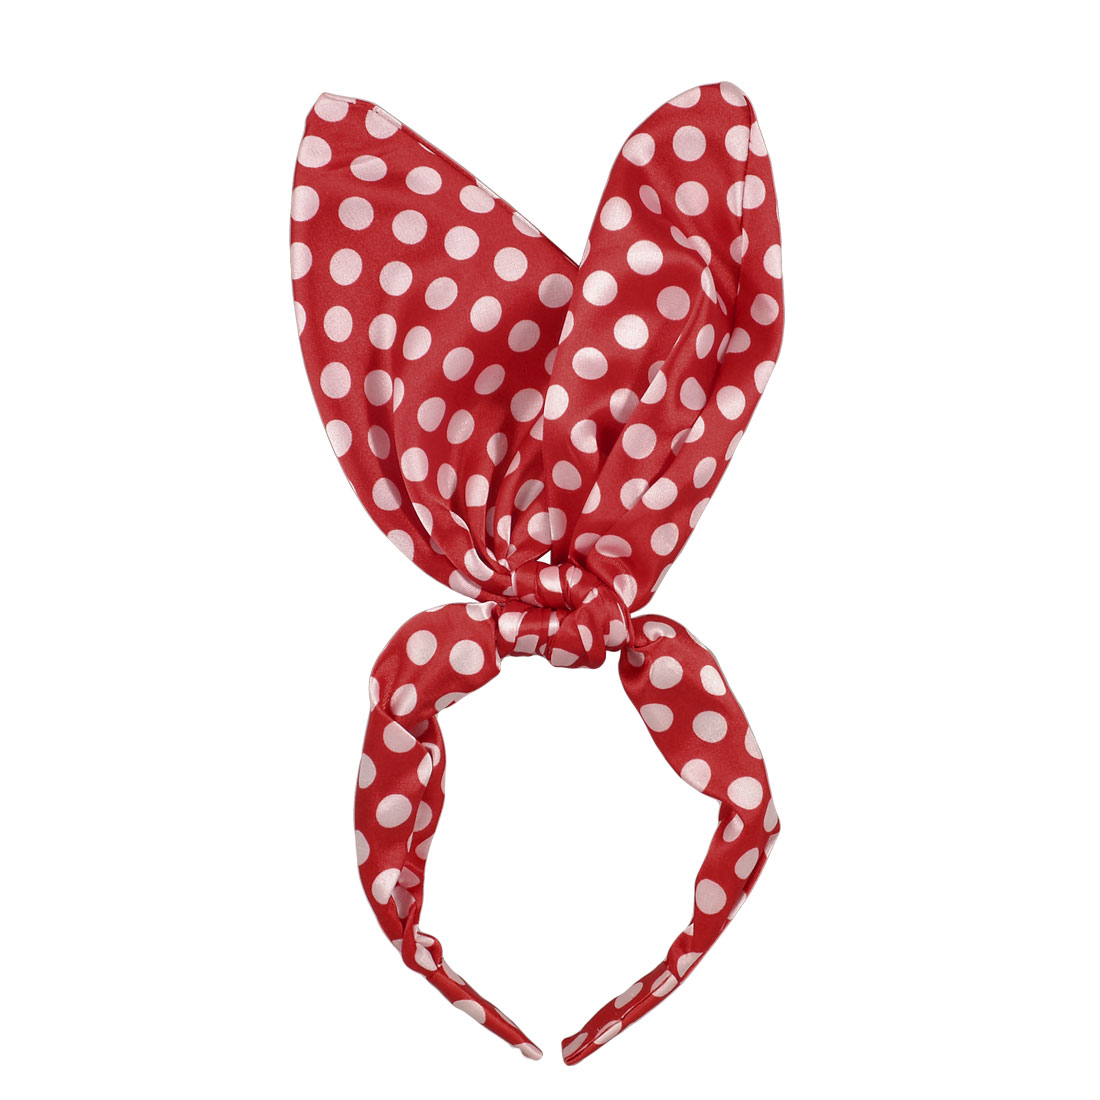 Lady White Dot Print Rabbit Ear Style Headband Hair Hoop Red for Masquerade